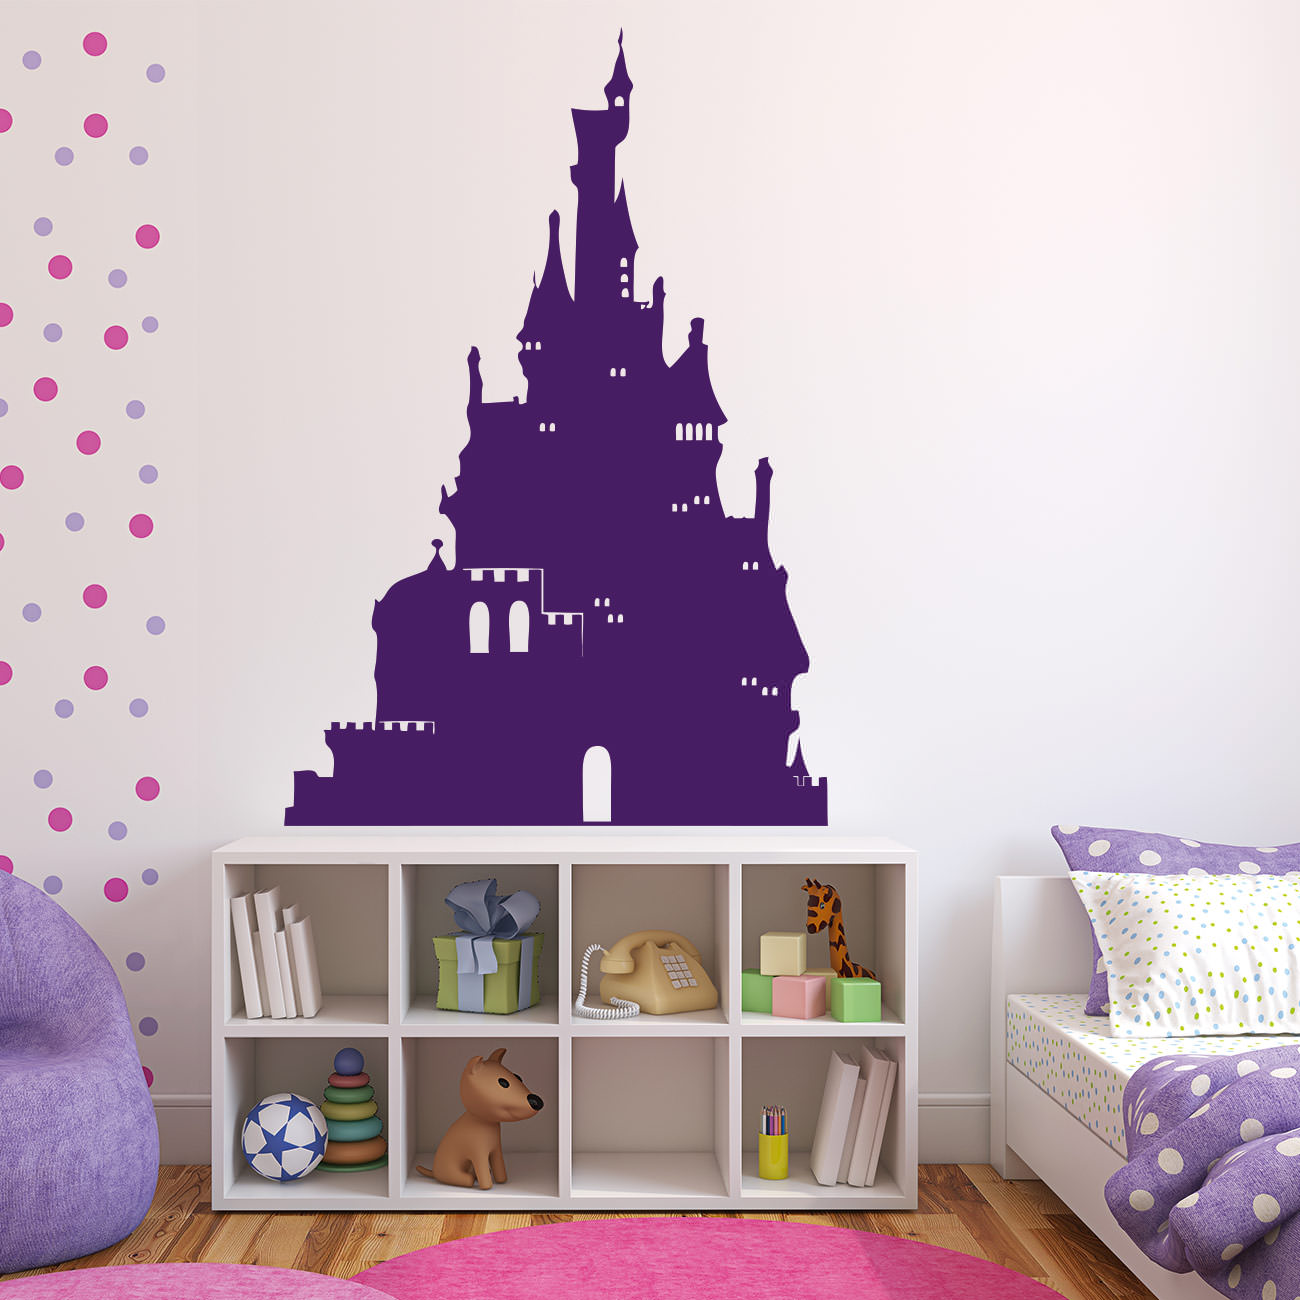 prinzessin schloss f r wohnzimmer kinderzimmer wandtattoo sunnywall online shop. Black Bedroom Furniture Sets. Home Design Ideas